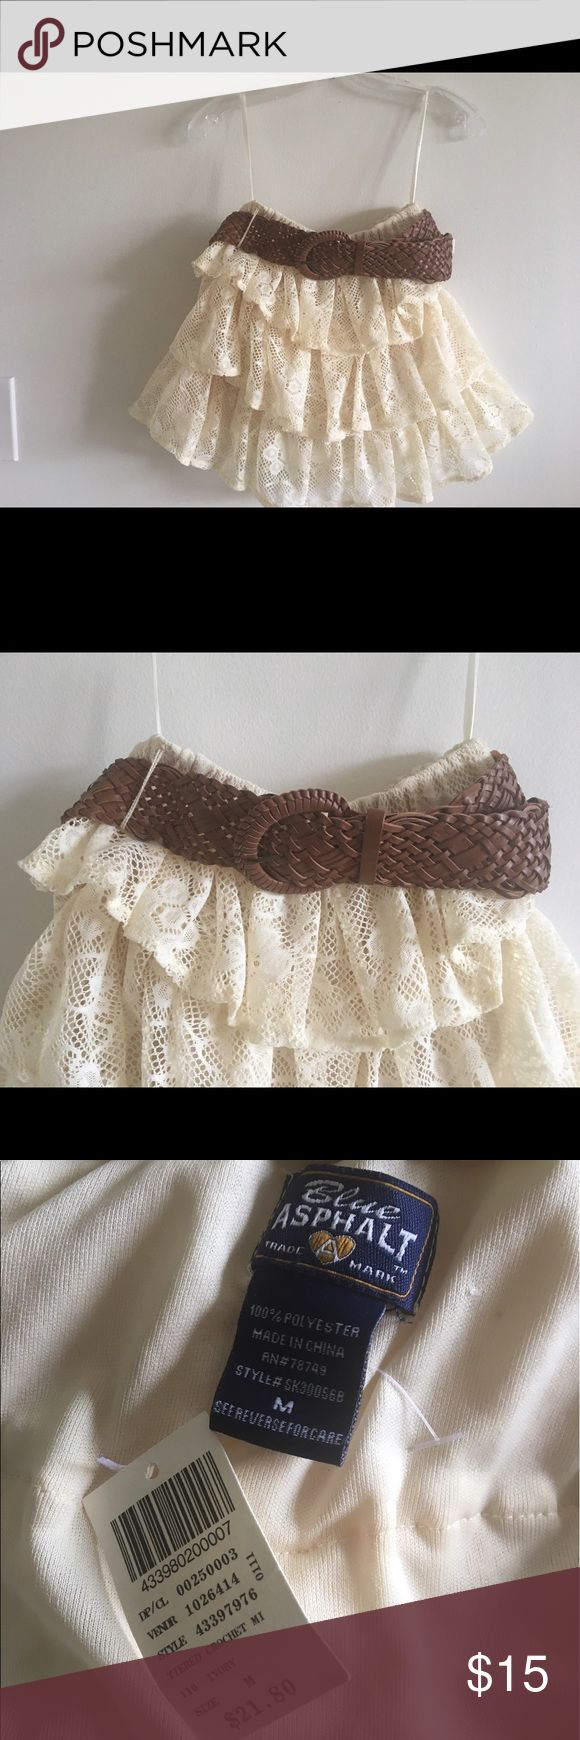 Gorgeous crochet trimmed frilly skirt Cream skirt with crochet trimming and cute frills . Has a nice brown belt ! I bought it coz it's so perfect and cute for summer but it's unfortunately a bit small for me ! Skirts Mini